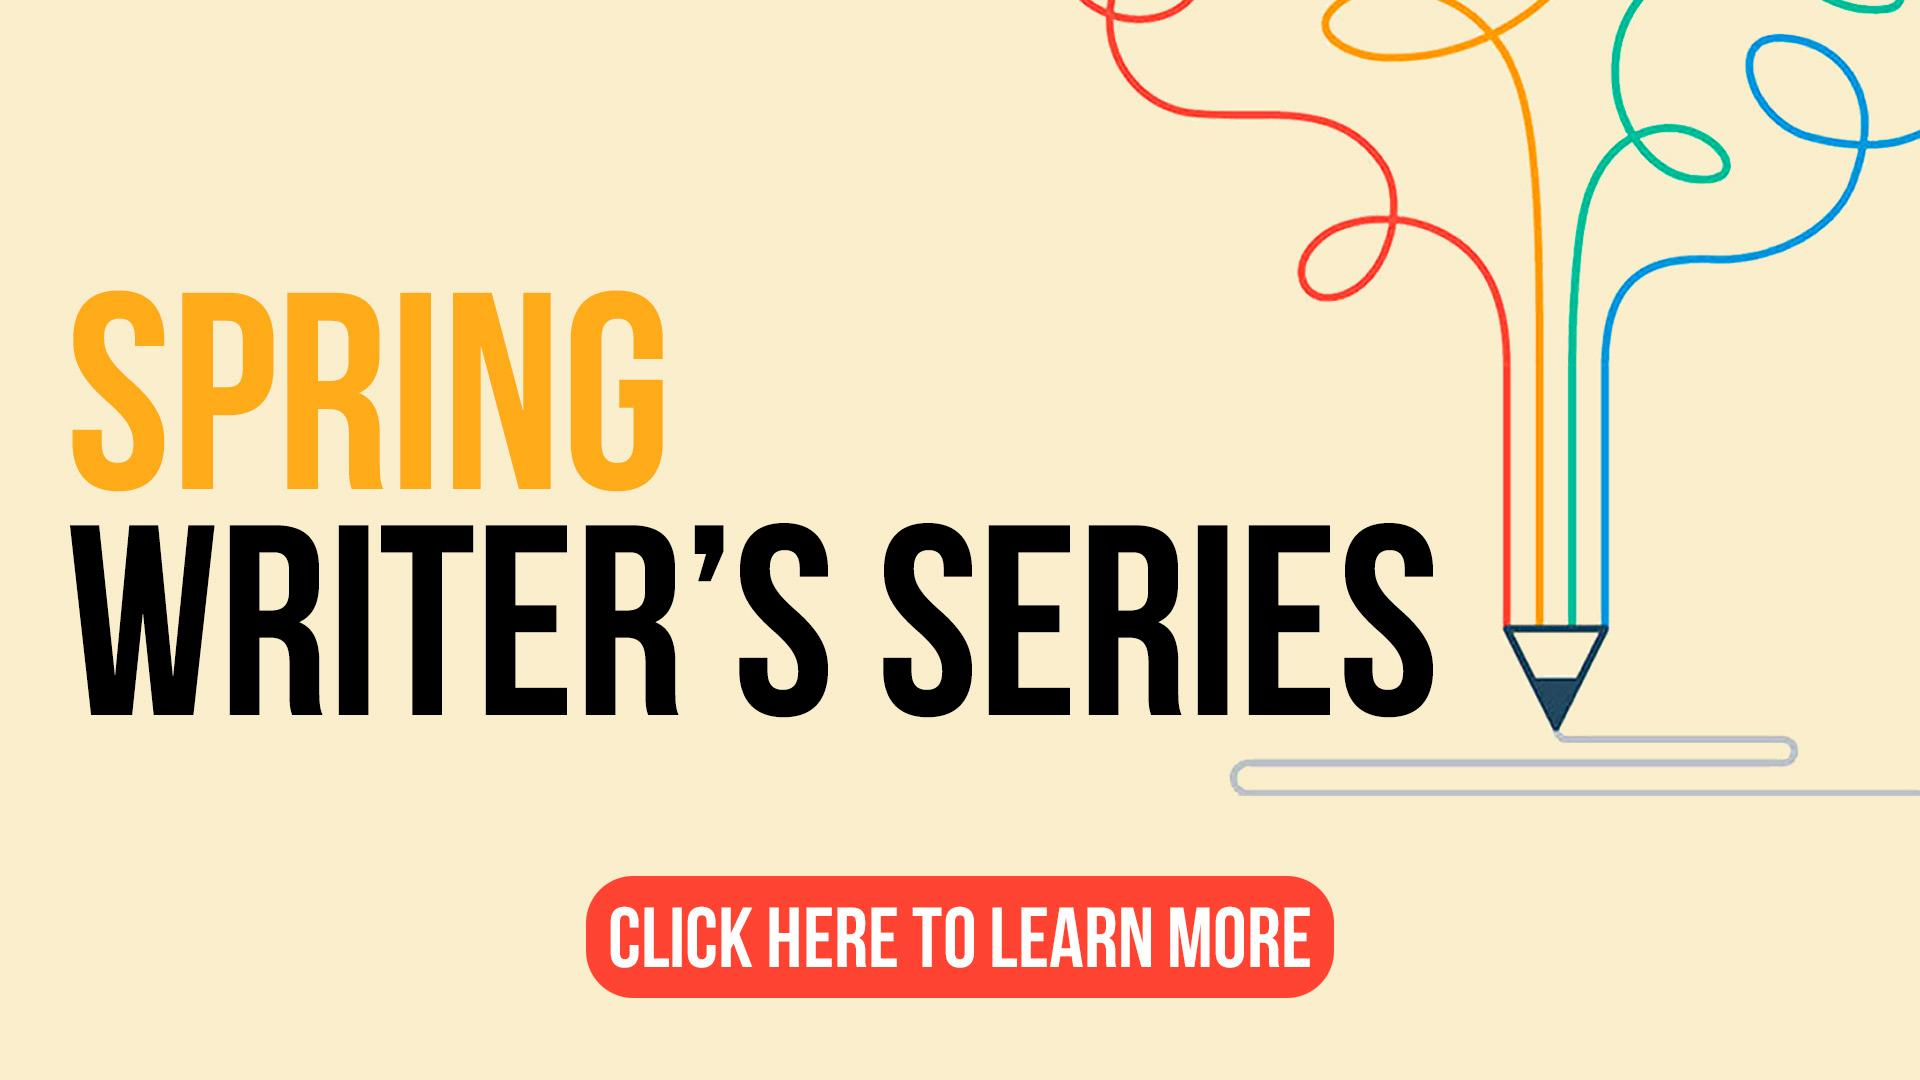 """Spring Writer's Series - Click here to learn more.  This event is a """"World of Words"""" event - a JCC writing initiative."""